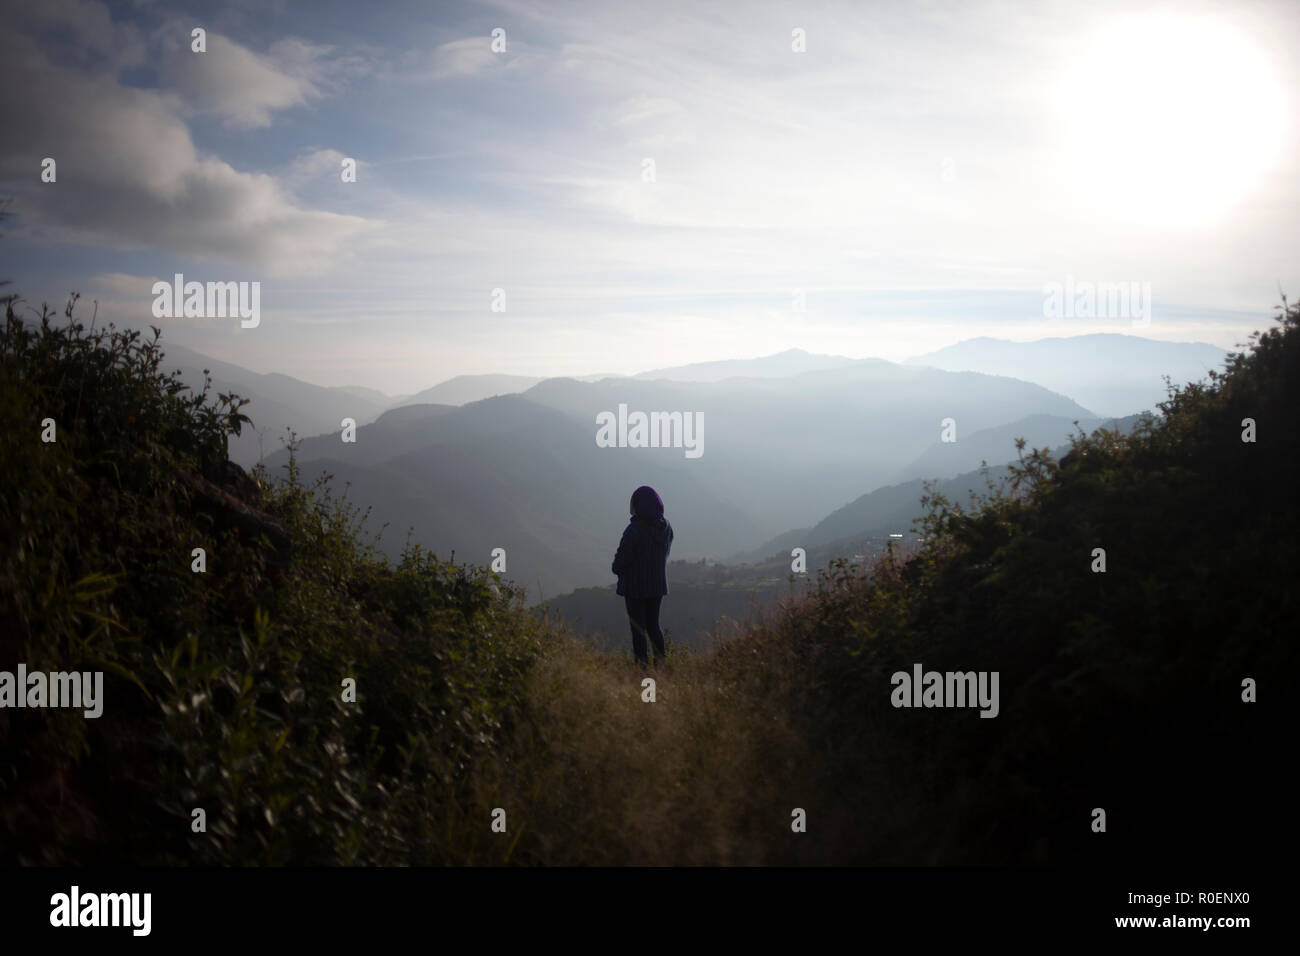 A woman walks at sunrise in Lachatao, in the Sierra Norte of Oaxaca, Mexico - Stock Image